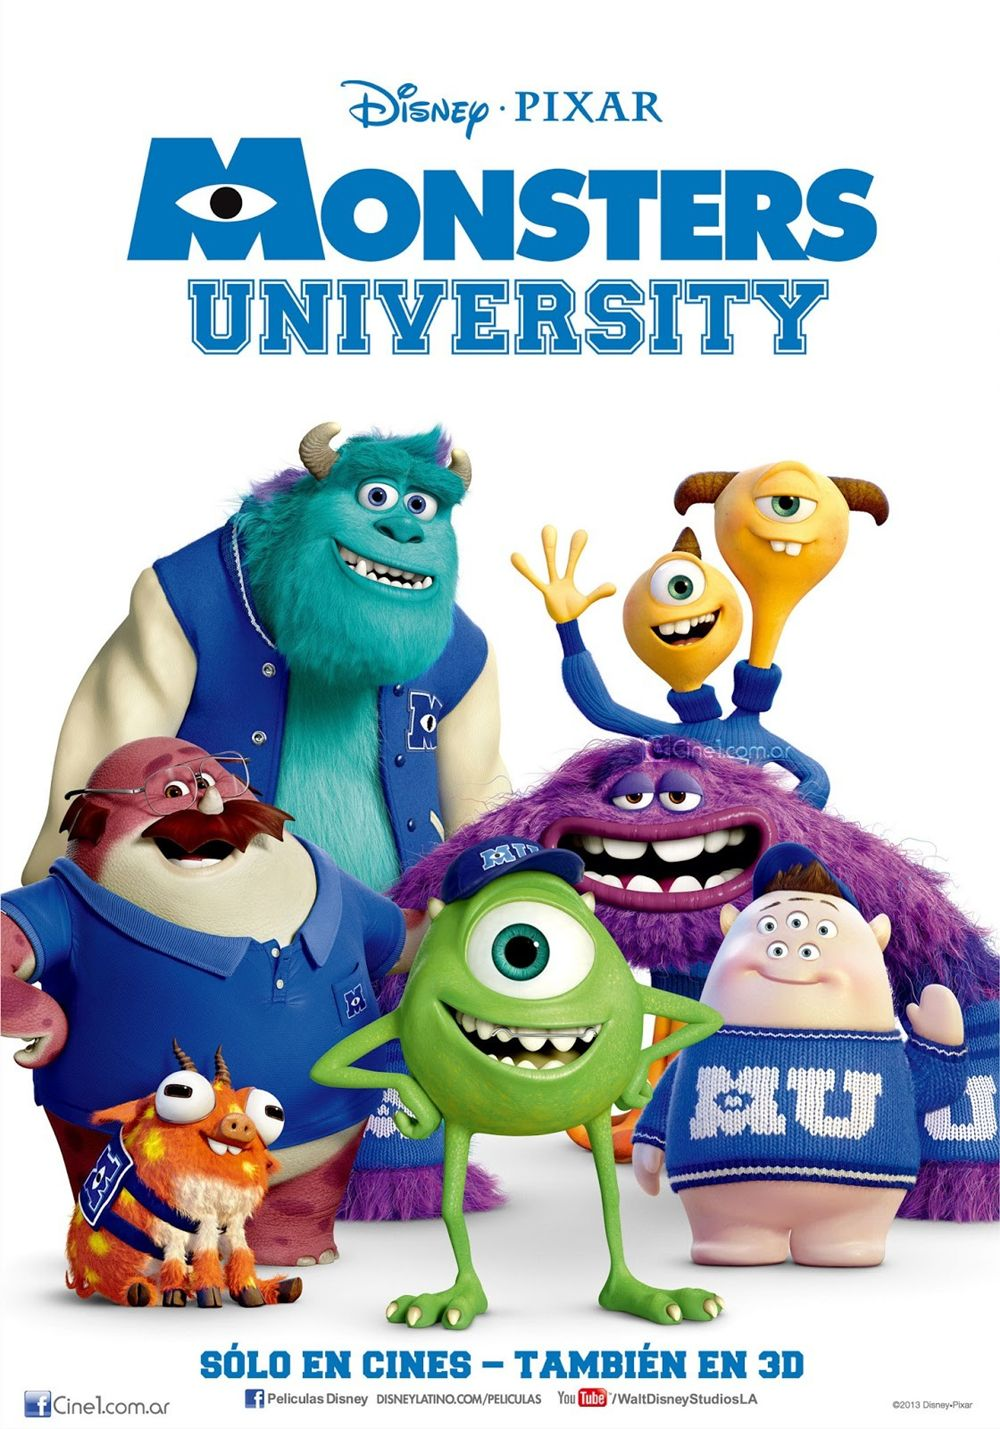 http://1.bp.blogspot.com/--Uyan0tJ_lk/UYq17Bcp69I/AAAAAAAAMHE/kLyLEgpOBLU/s1600/Monsters+University+-+International+Poster+1.jpg